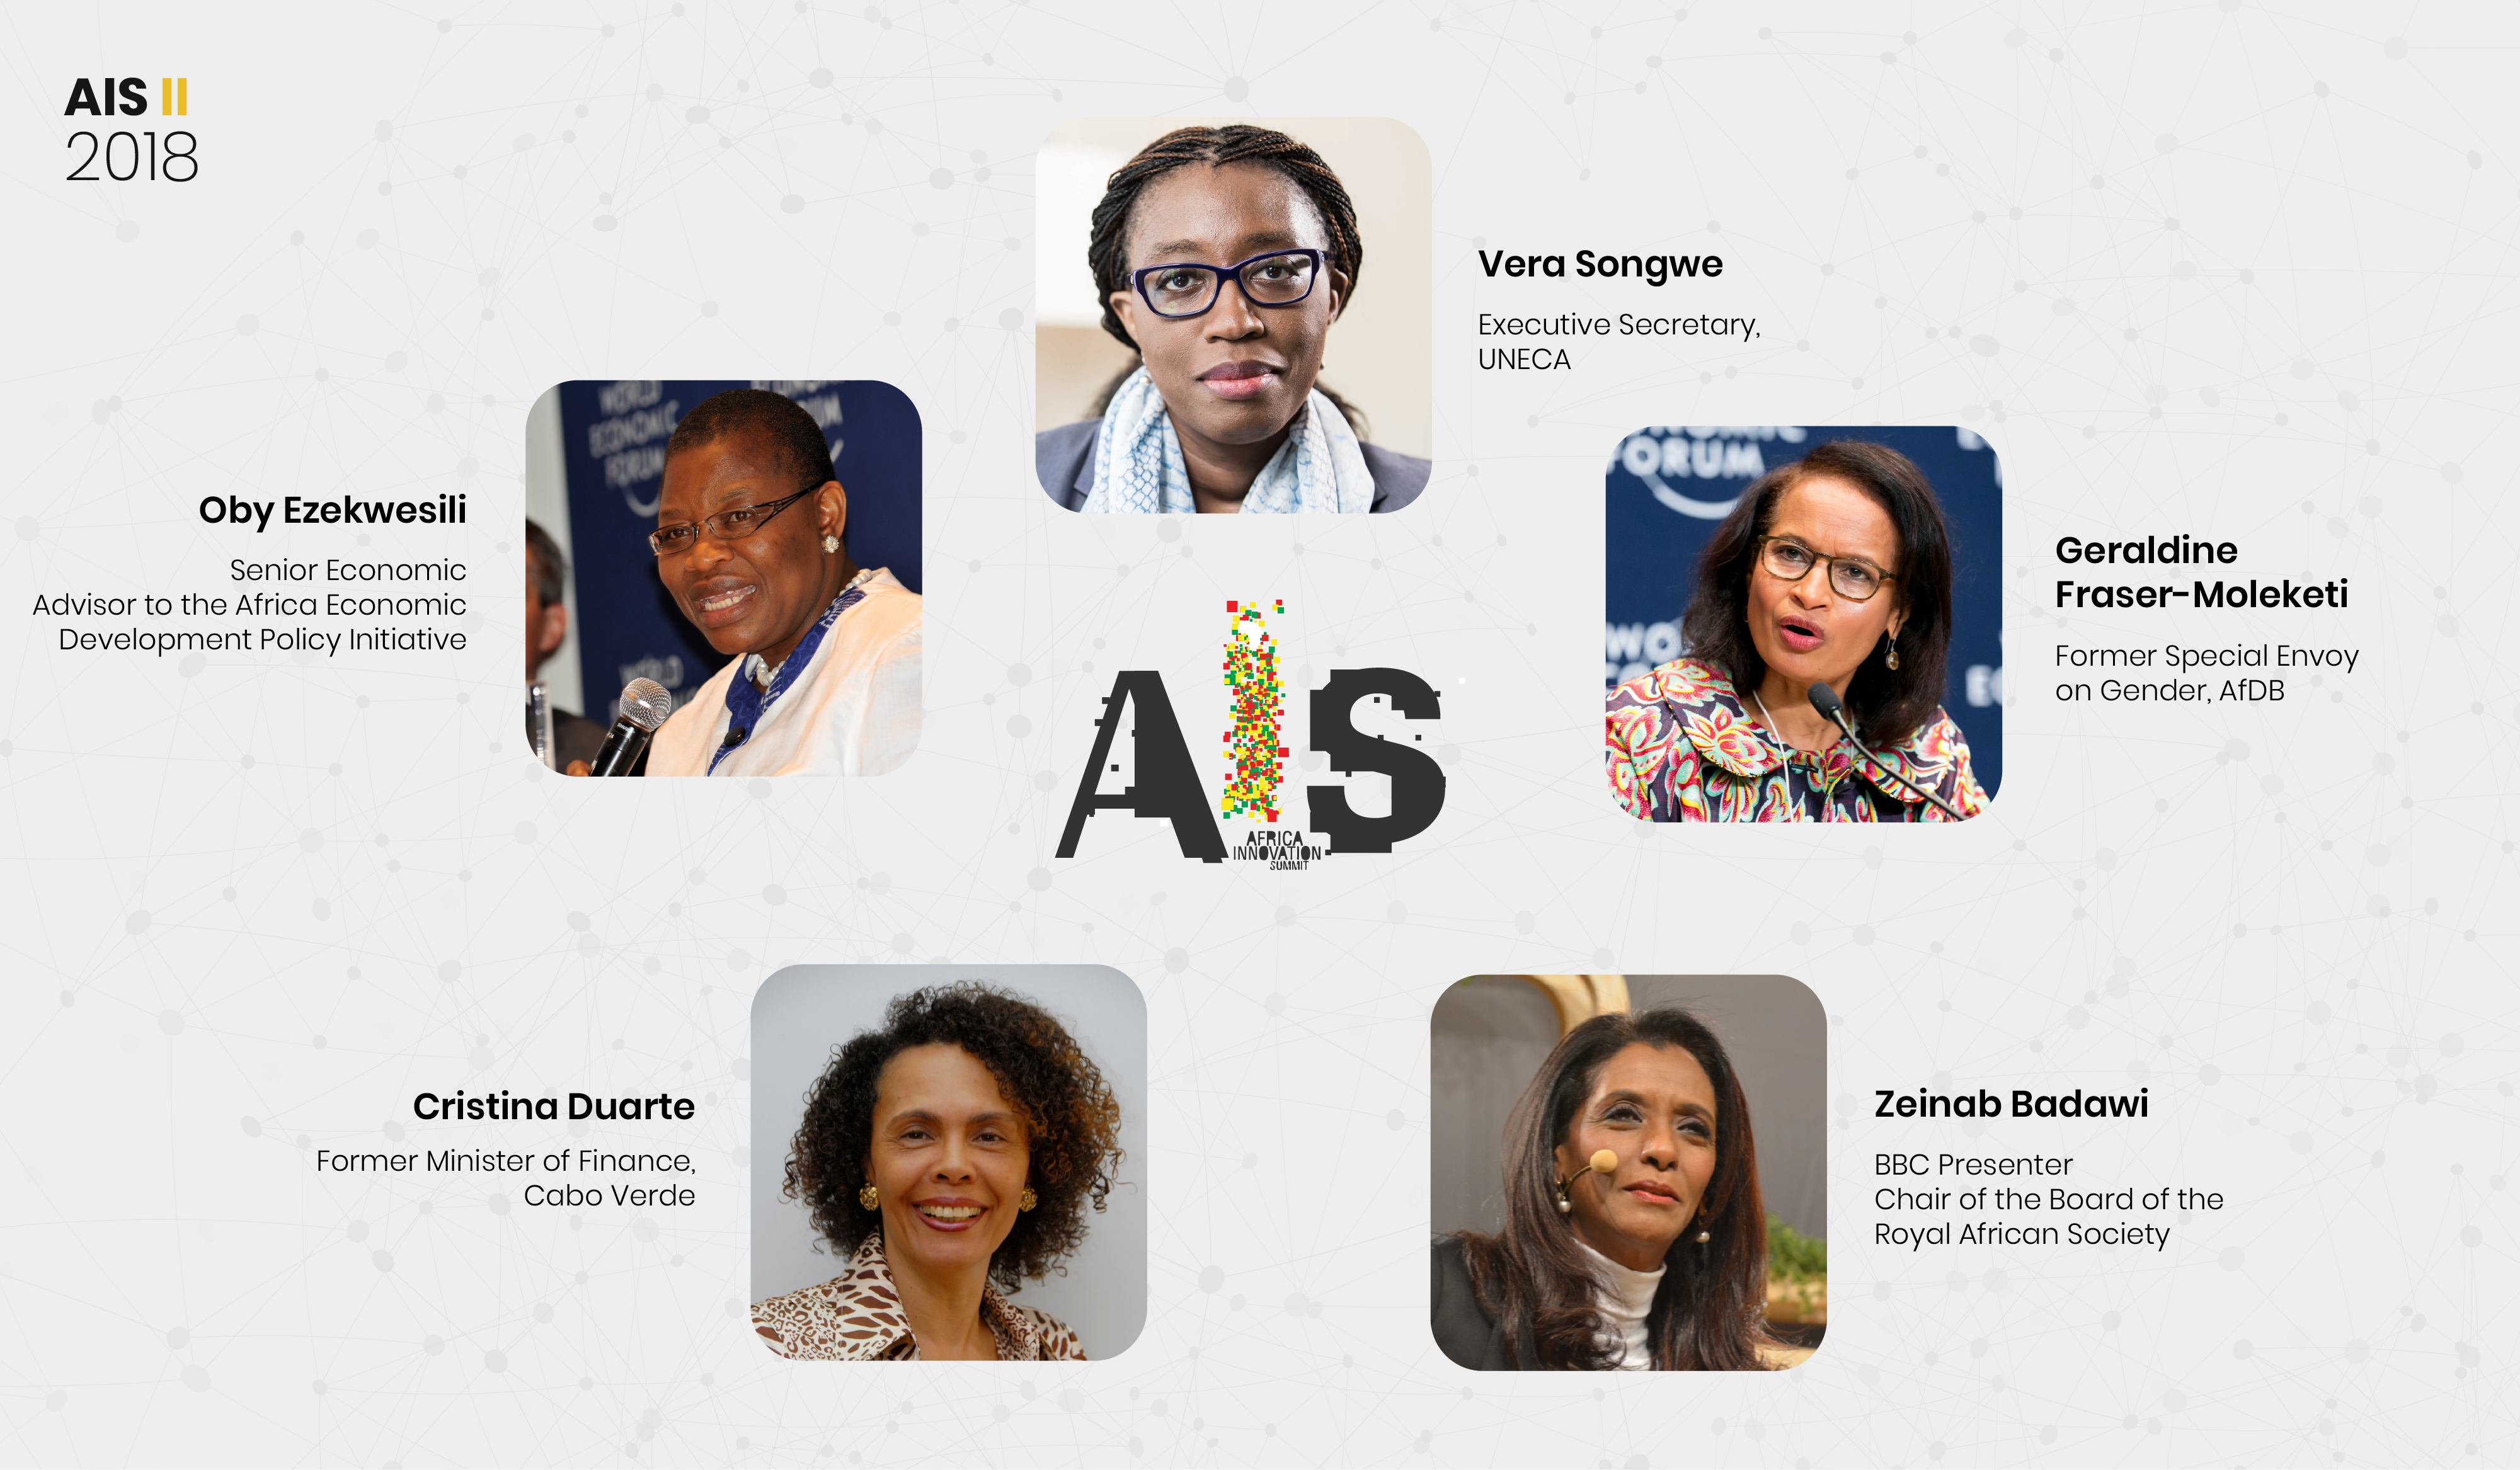 Five Leading African Women confirmed participation to the #AIS2018